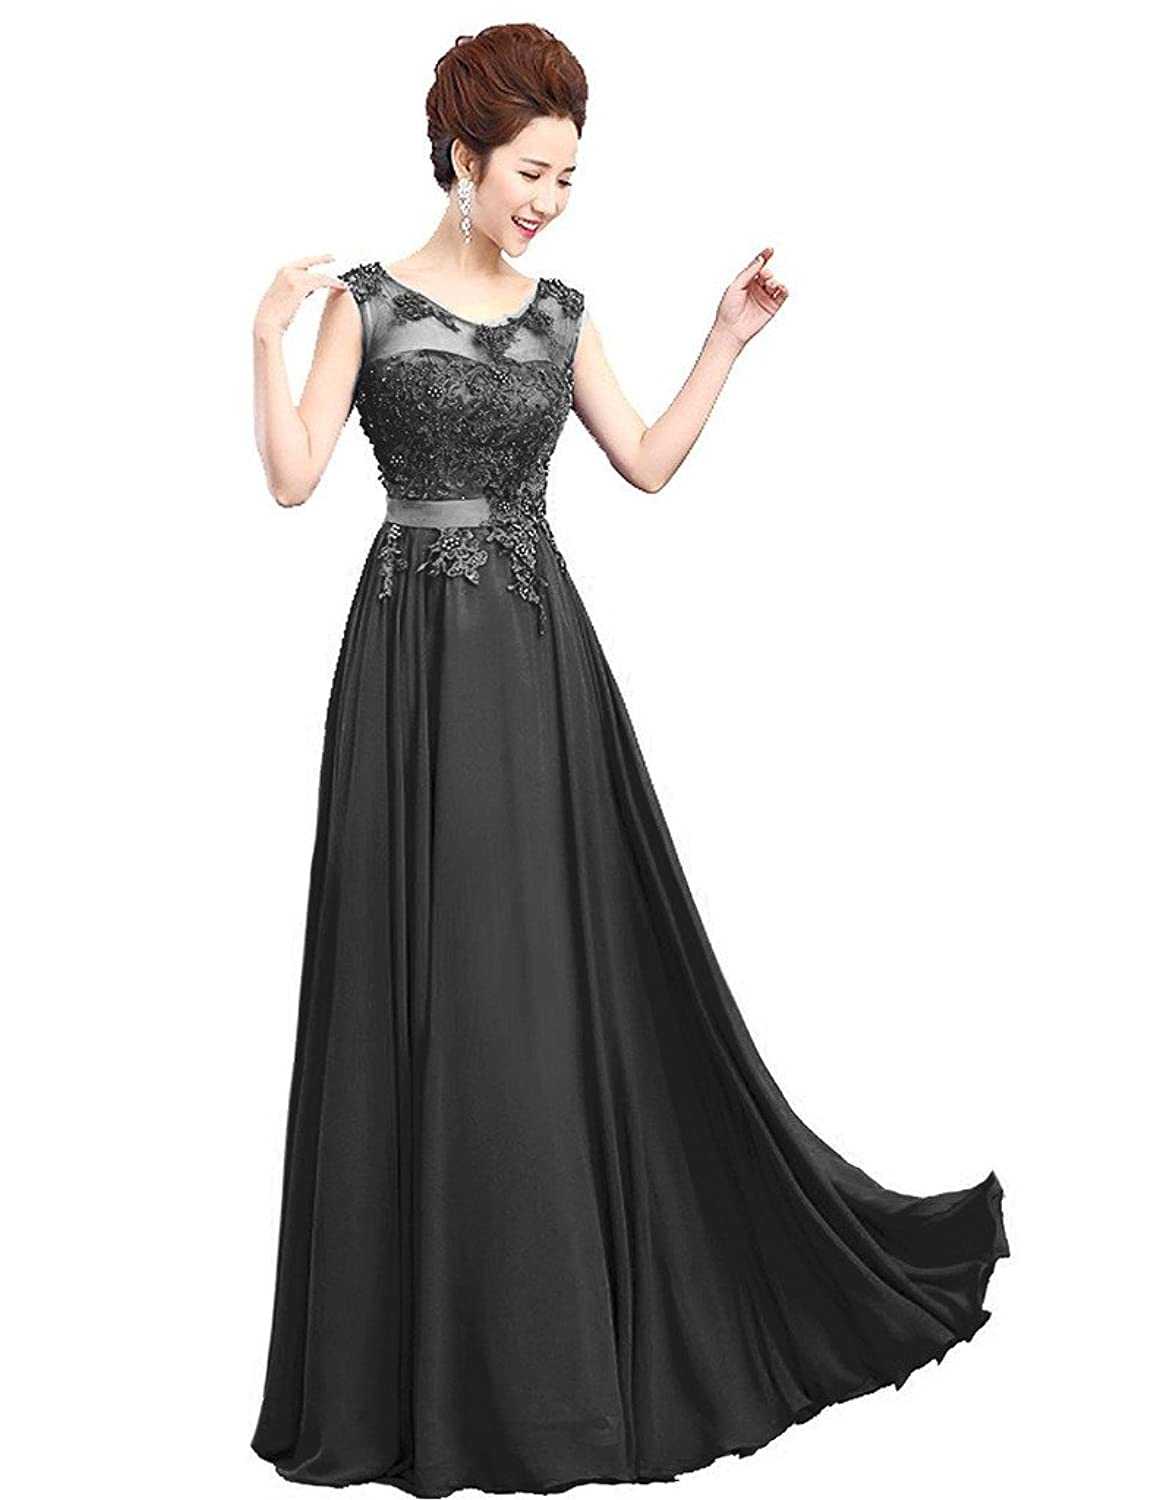 Amazon.com: Vantexi Womens Lace Appliqued Chiffon Formal Evening Dresses: Clothing